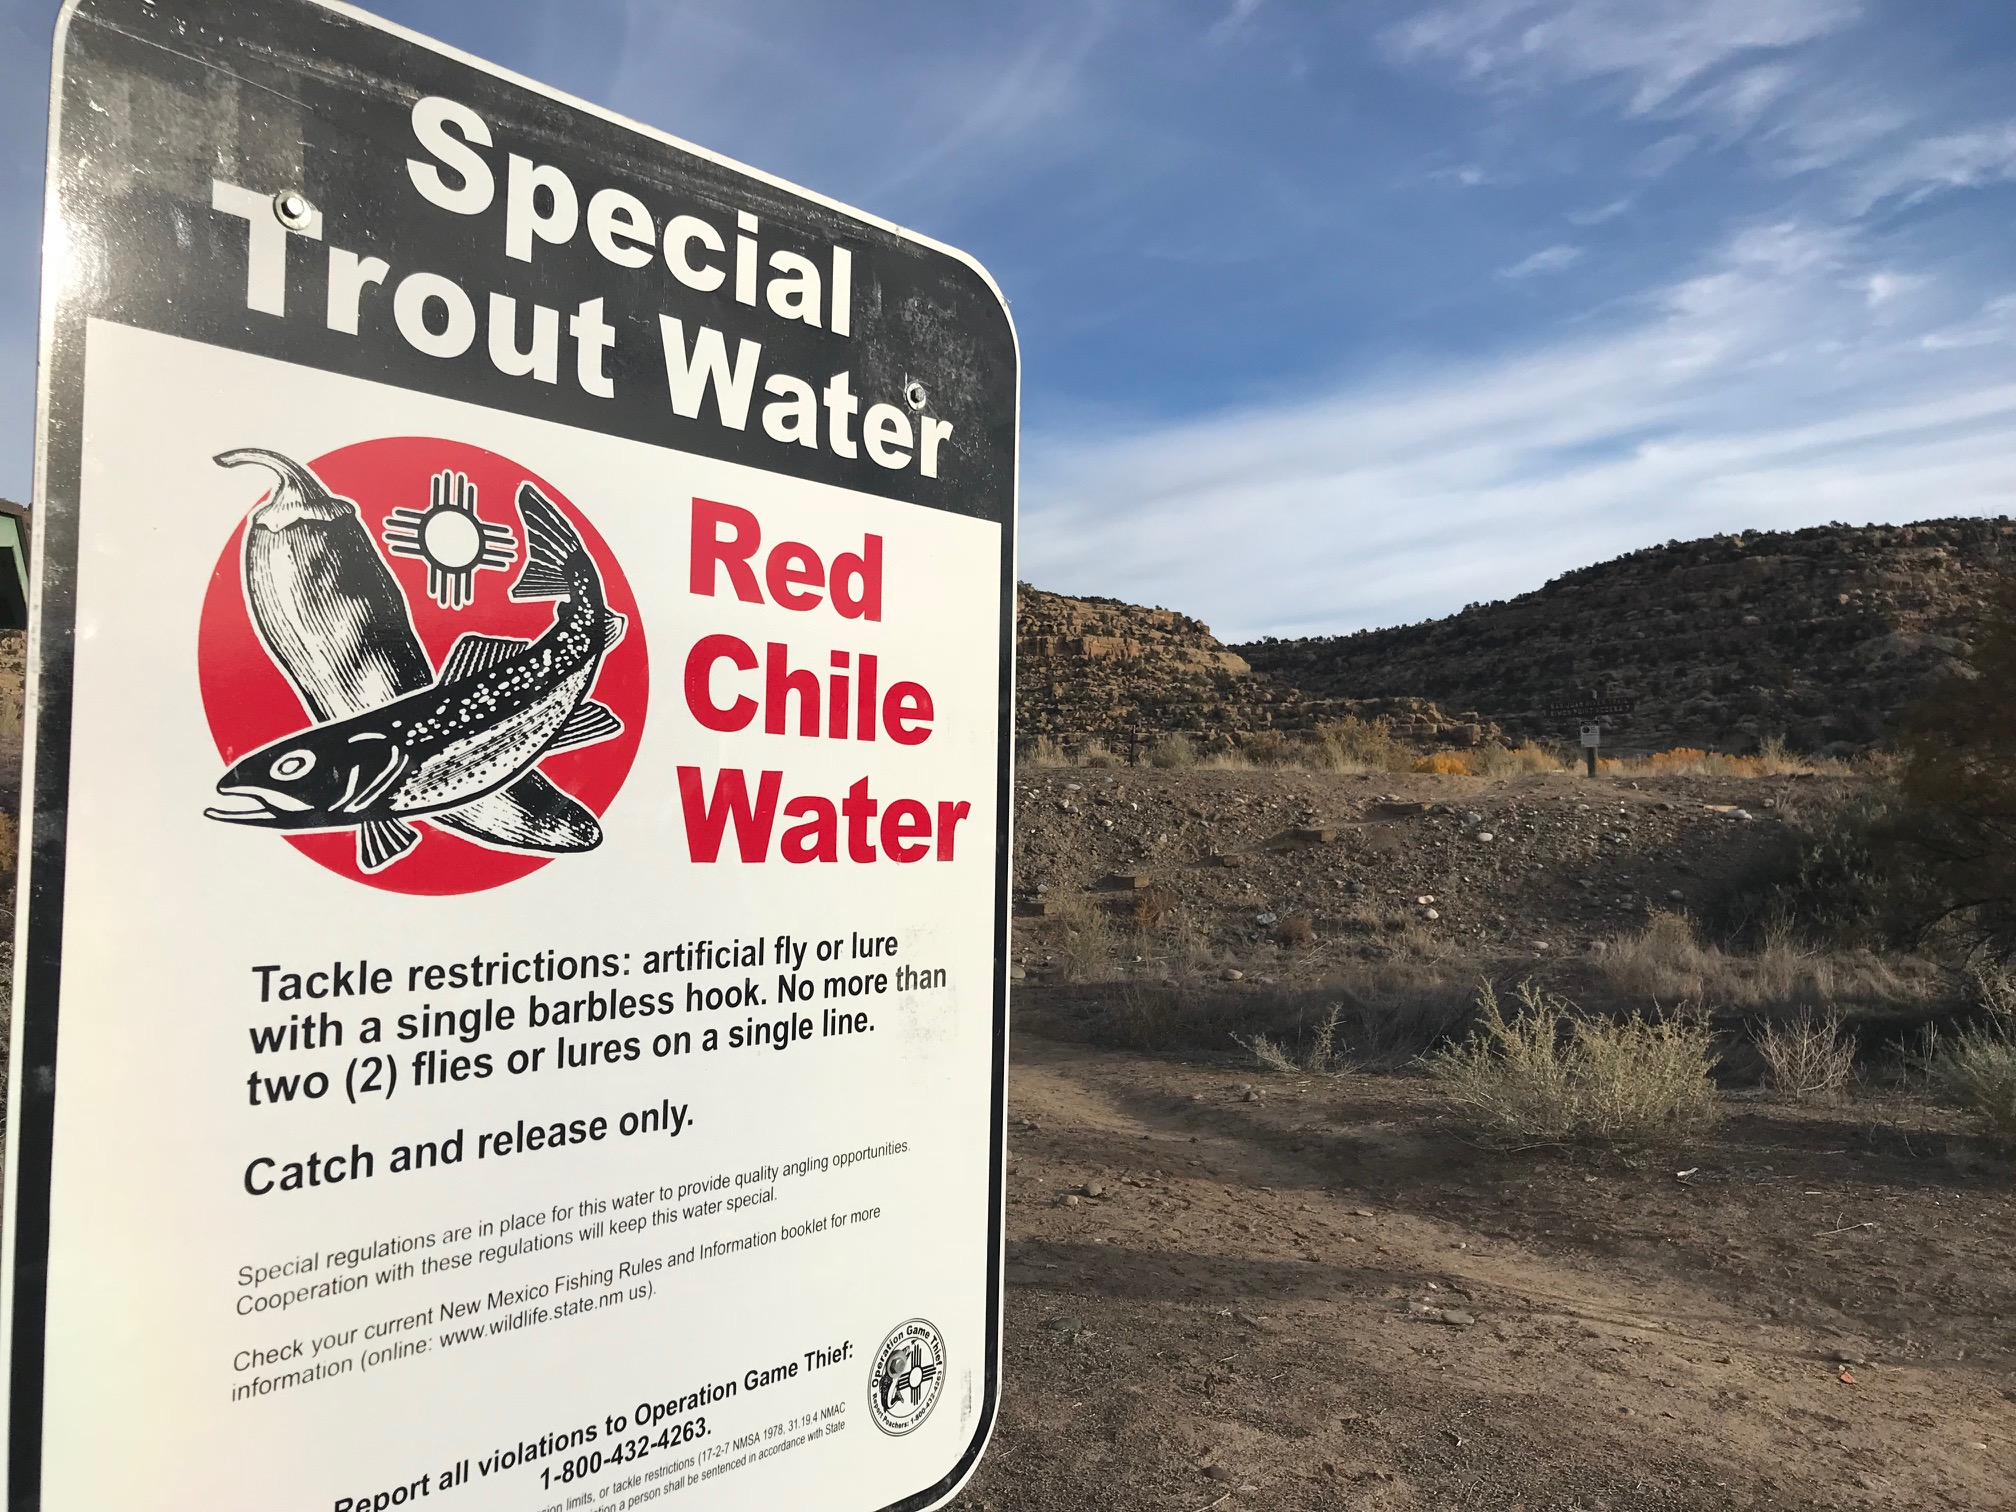 New Mexico Red Chile Water